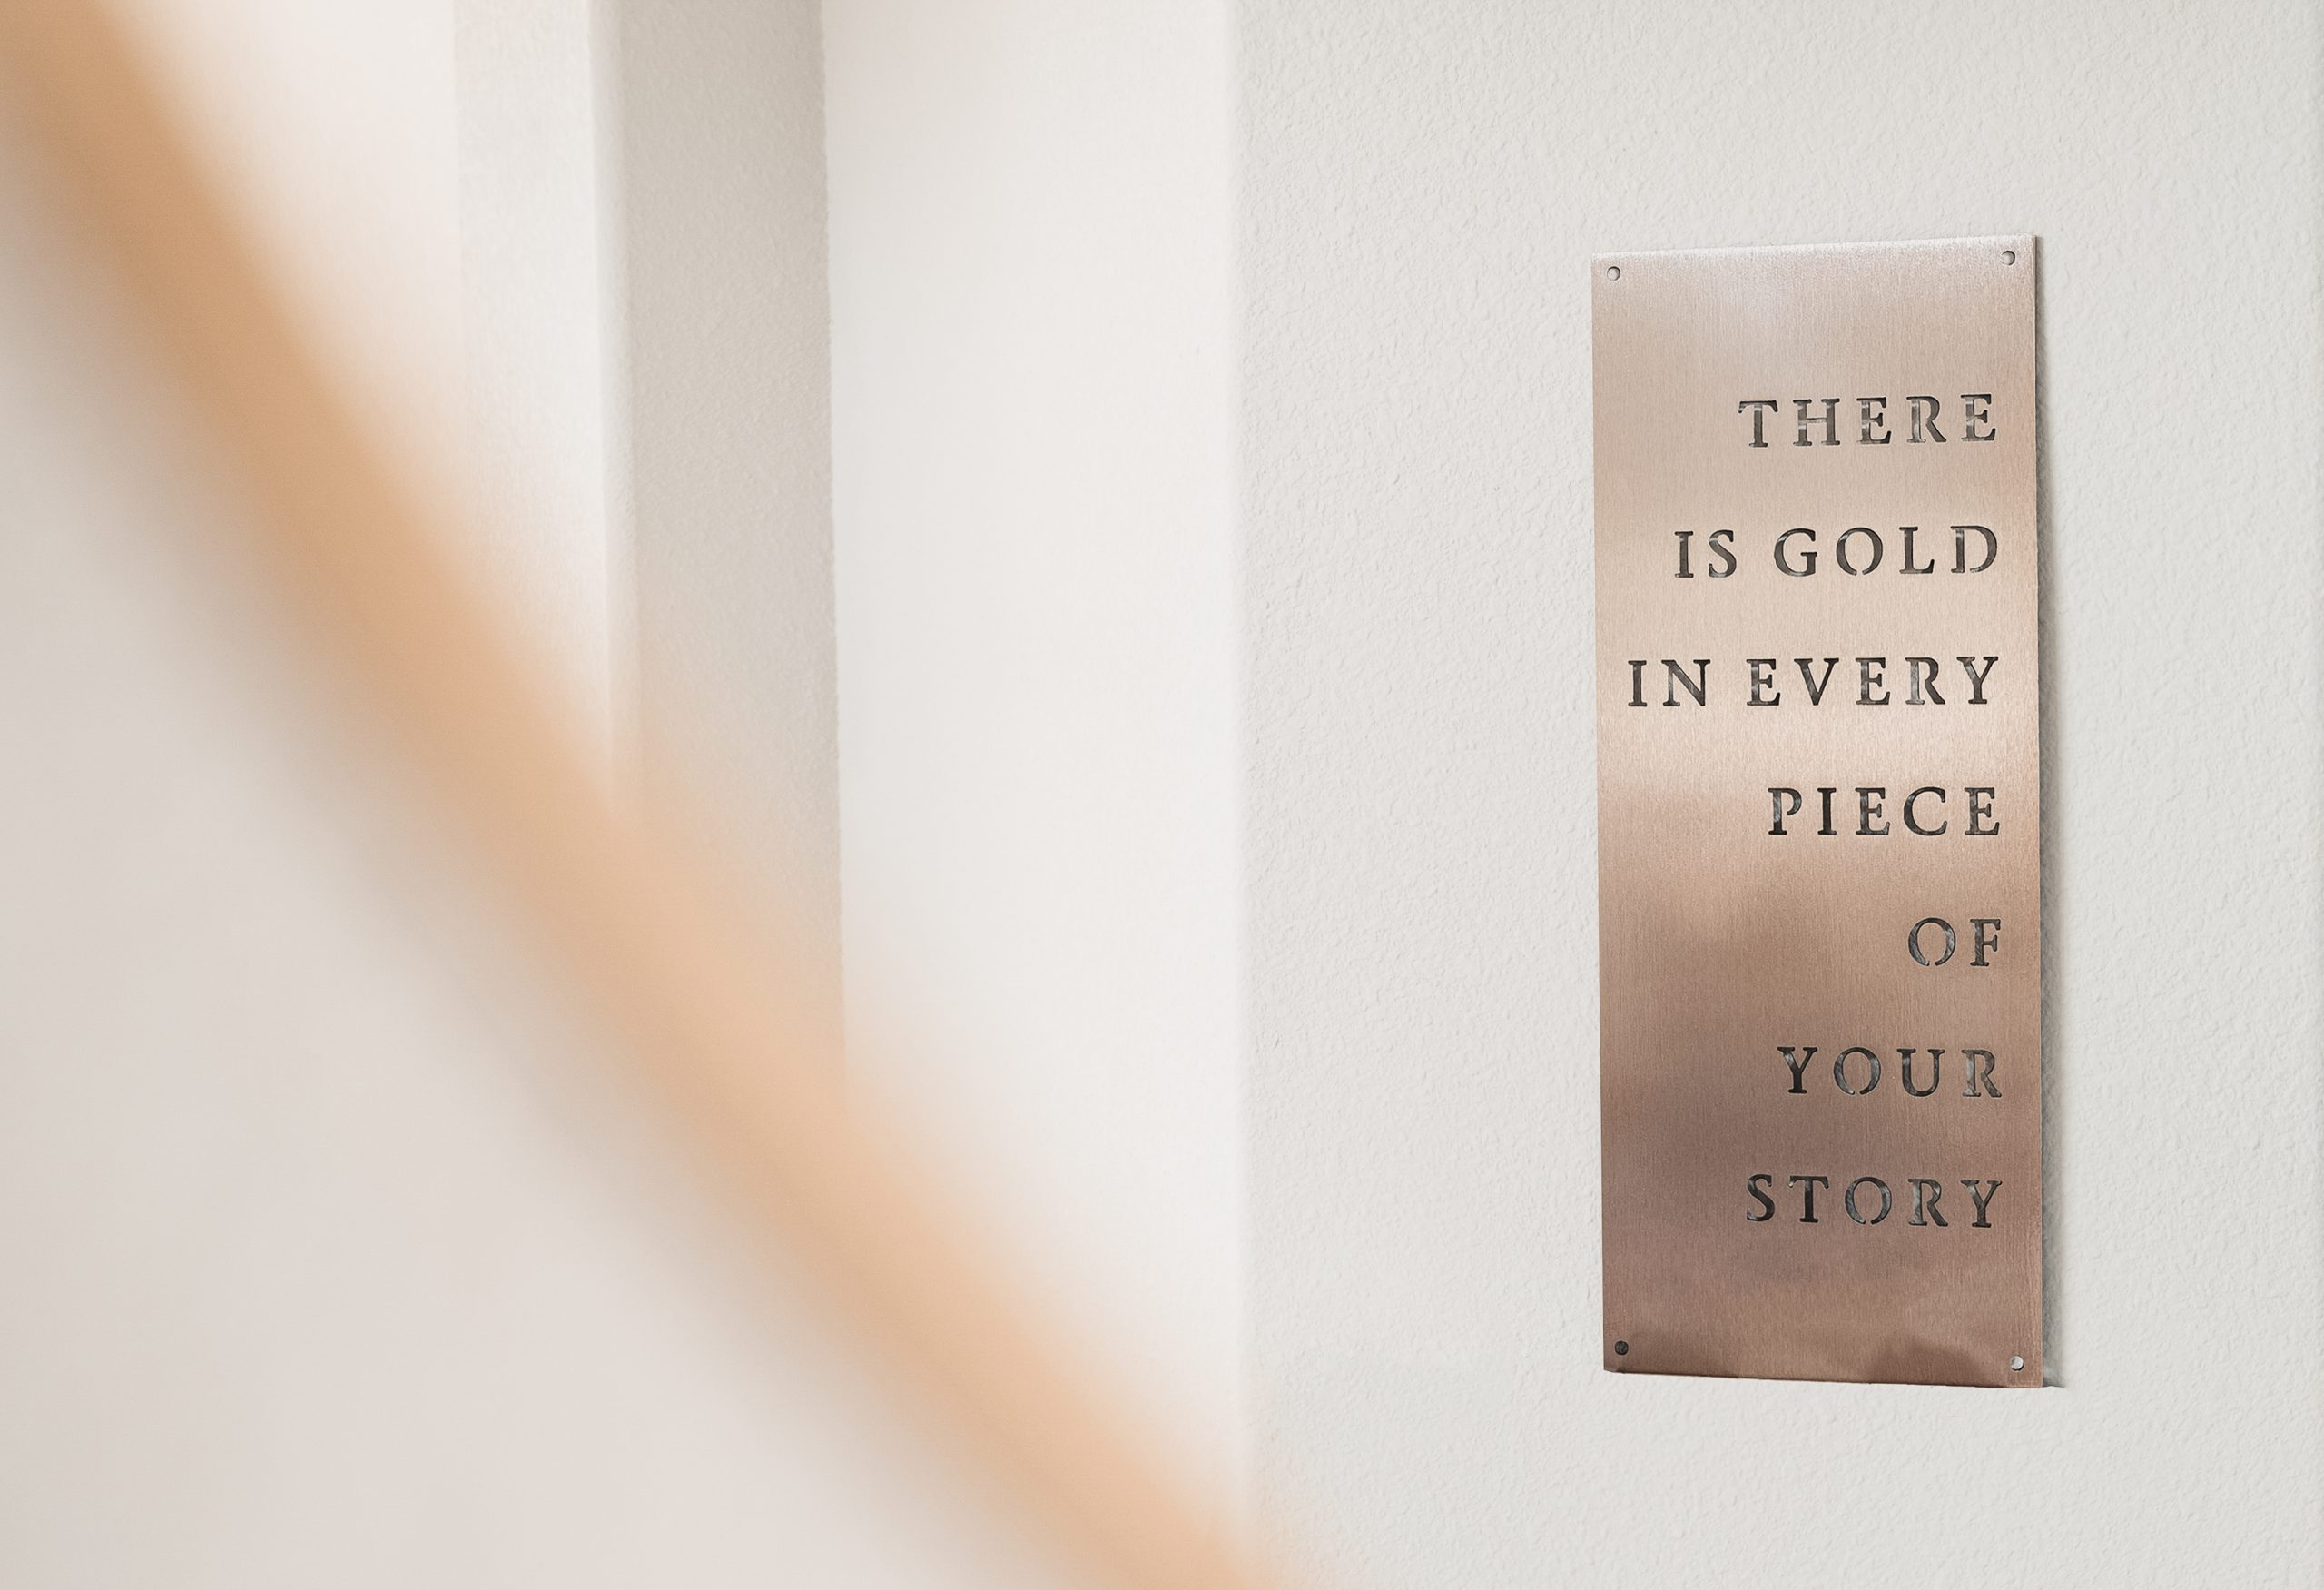 reflection of gold plaque there is gold in every piece of your story